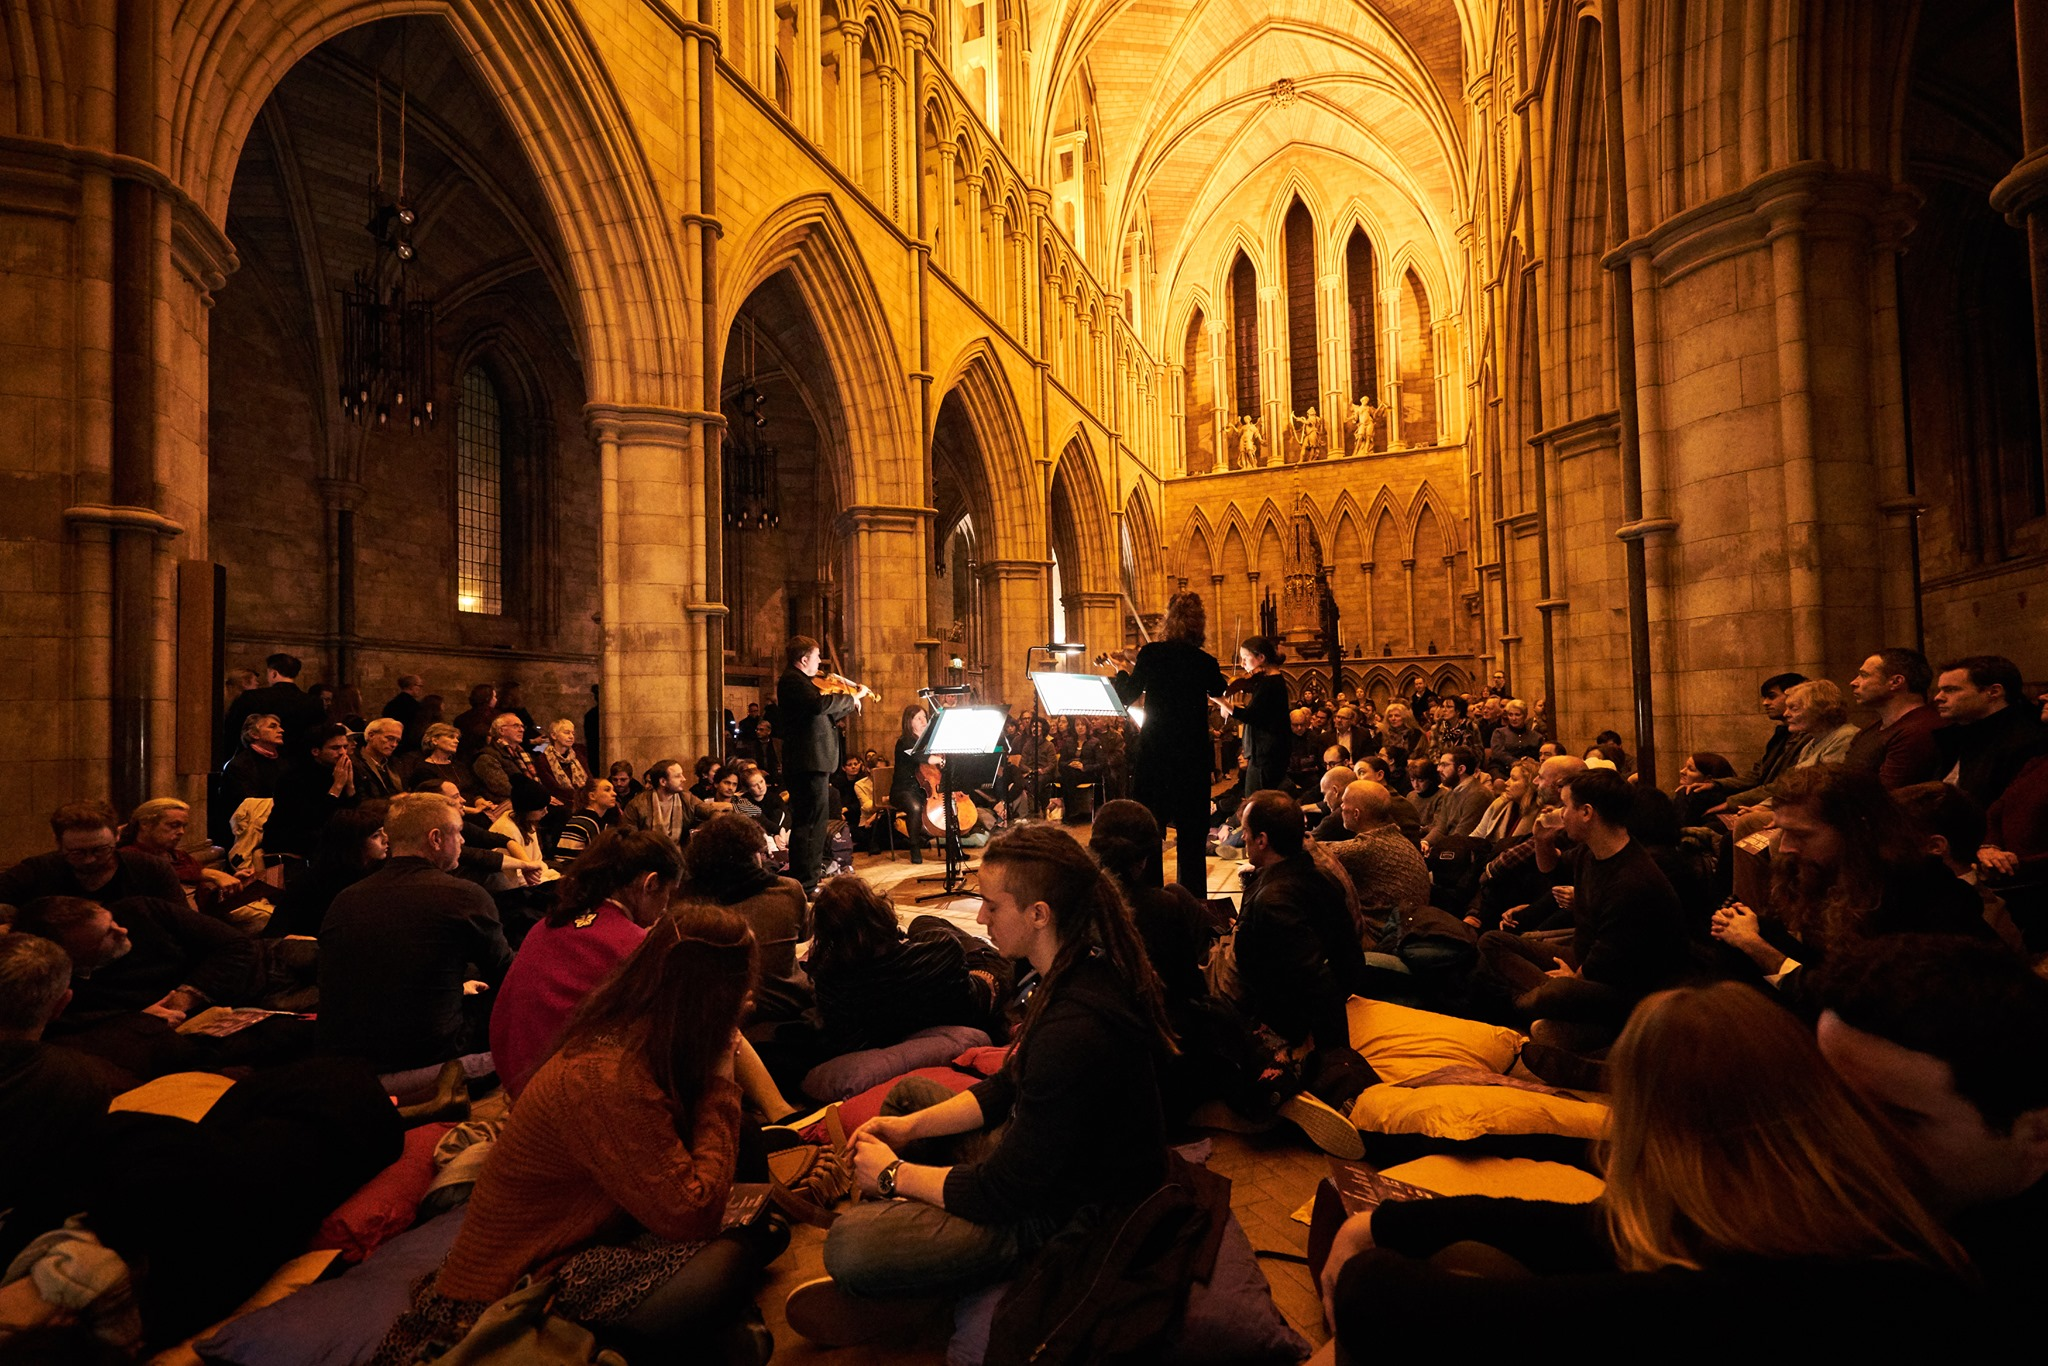 The Fruit of Silence - 3-23 October, 7.30pm, £20-£25 (16-25s £5)Worcester, Exeter, Bristol, Liverpool, Sheffield, Bradford, Truro, Llandaff, LichfieldExplore the stunning architecture of your local cathedral with a live orchestral soundtrack by the City of London Sinfonia. Prop yourself up on cushions or roam freely while chilling to the meditative music of Arvo Pärt and Dobrinka Tabakova, and hear ancient choral melodies that have resounded in our cathedrals across centuries. Aaaaand…relax.